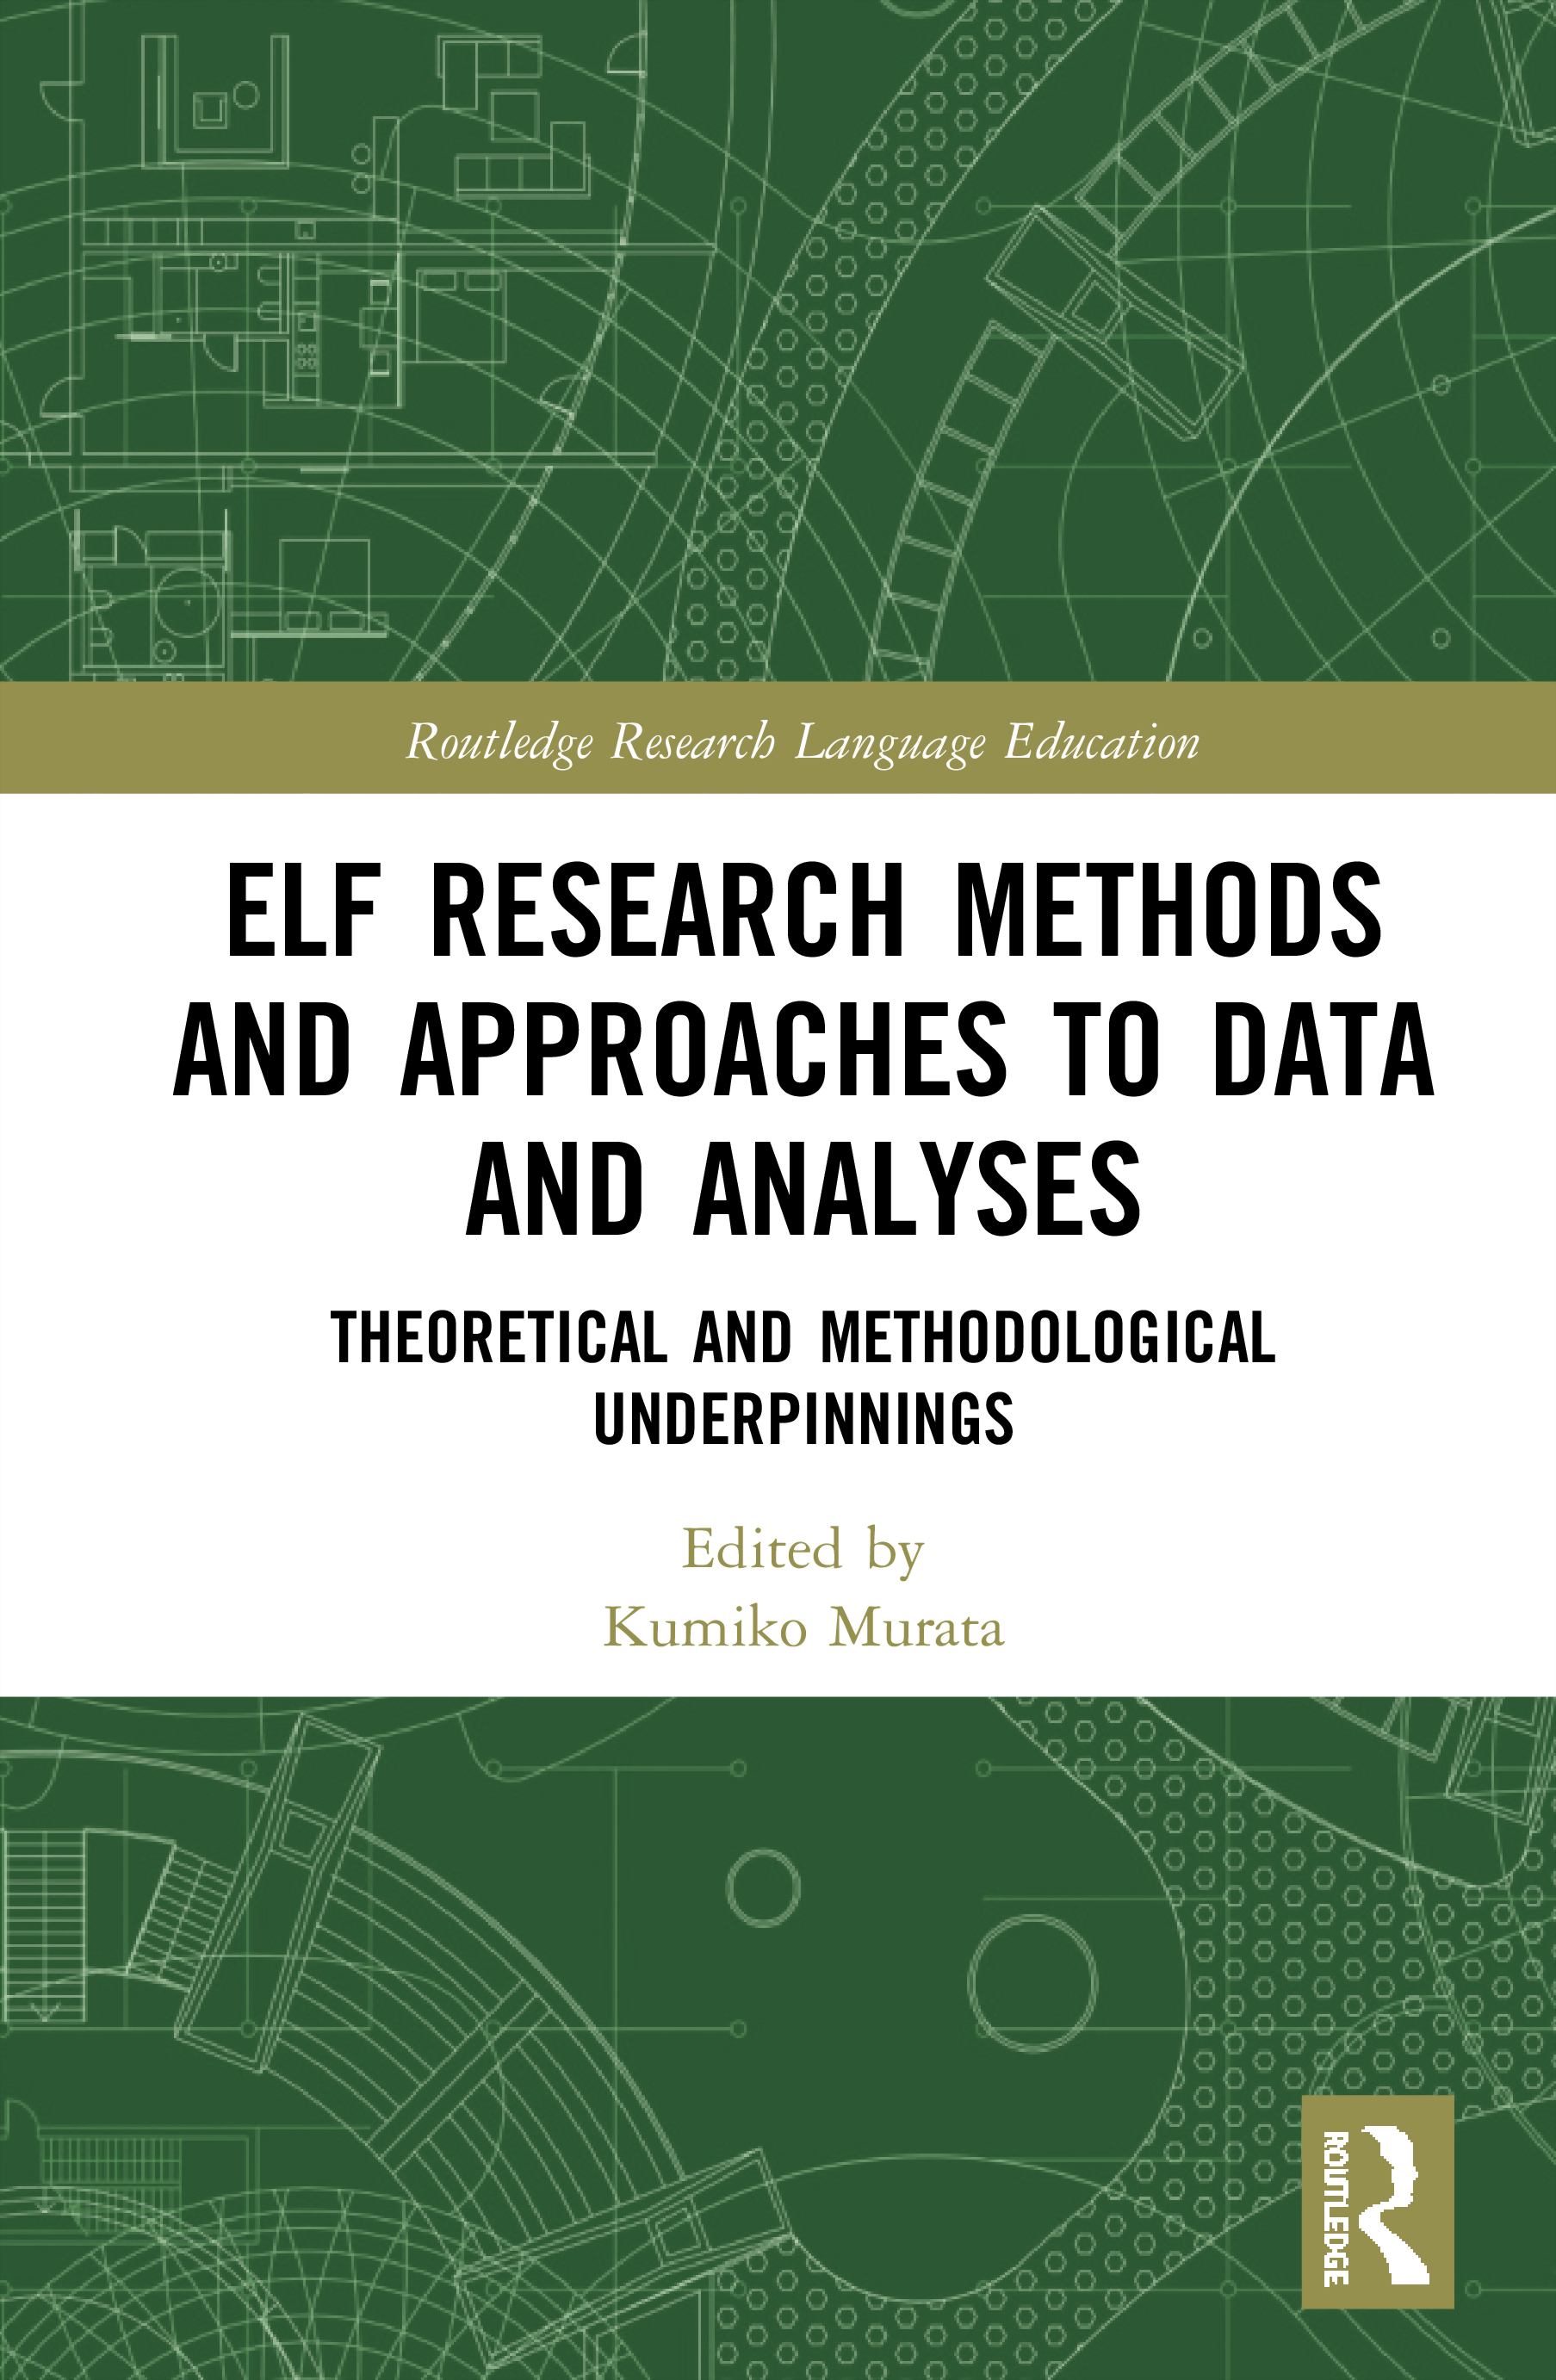 ELF Research Methods and Approaches to Data and Analyses: Theoretical and Methodological Underpinnings book cover